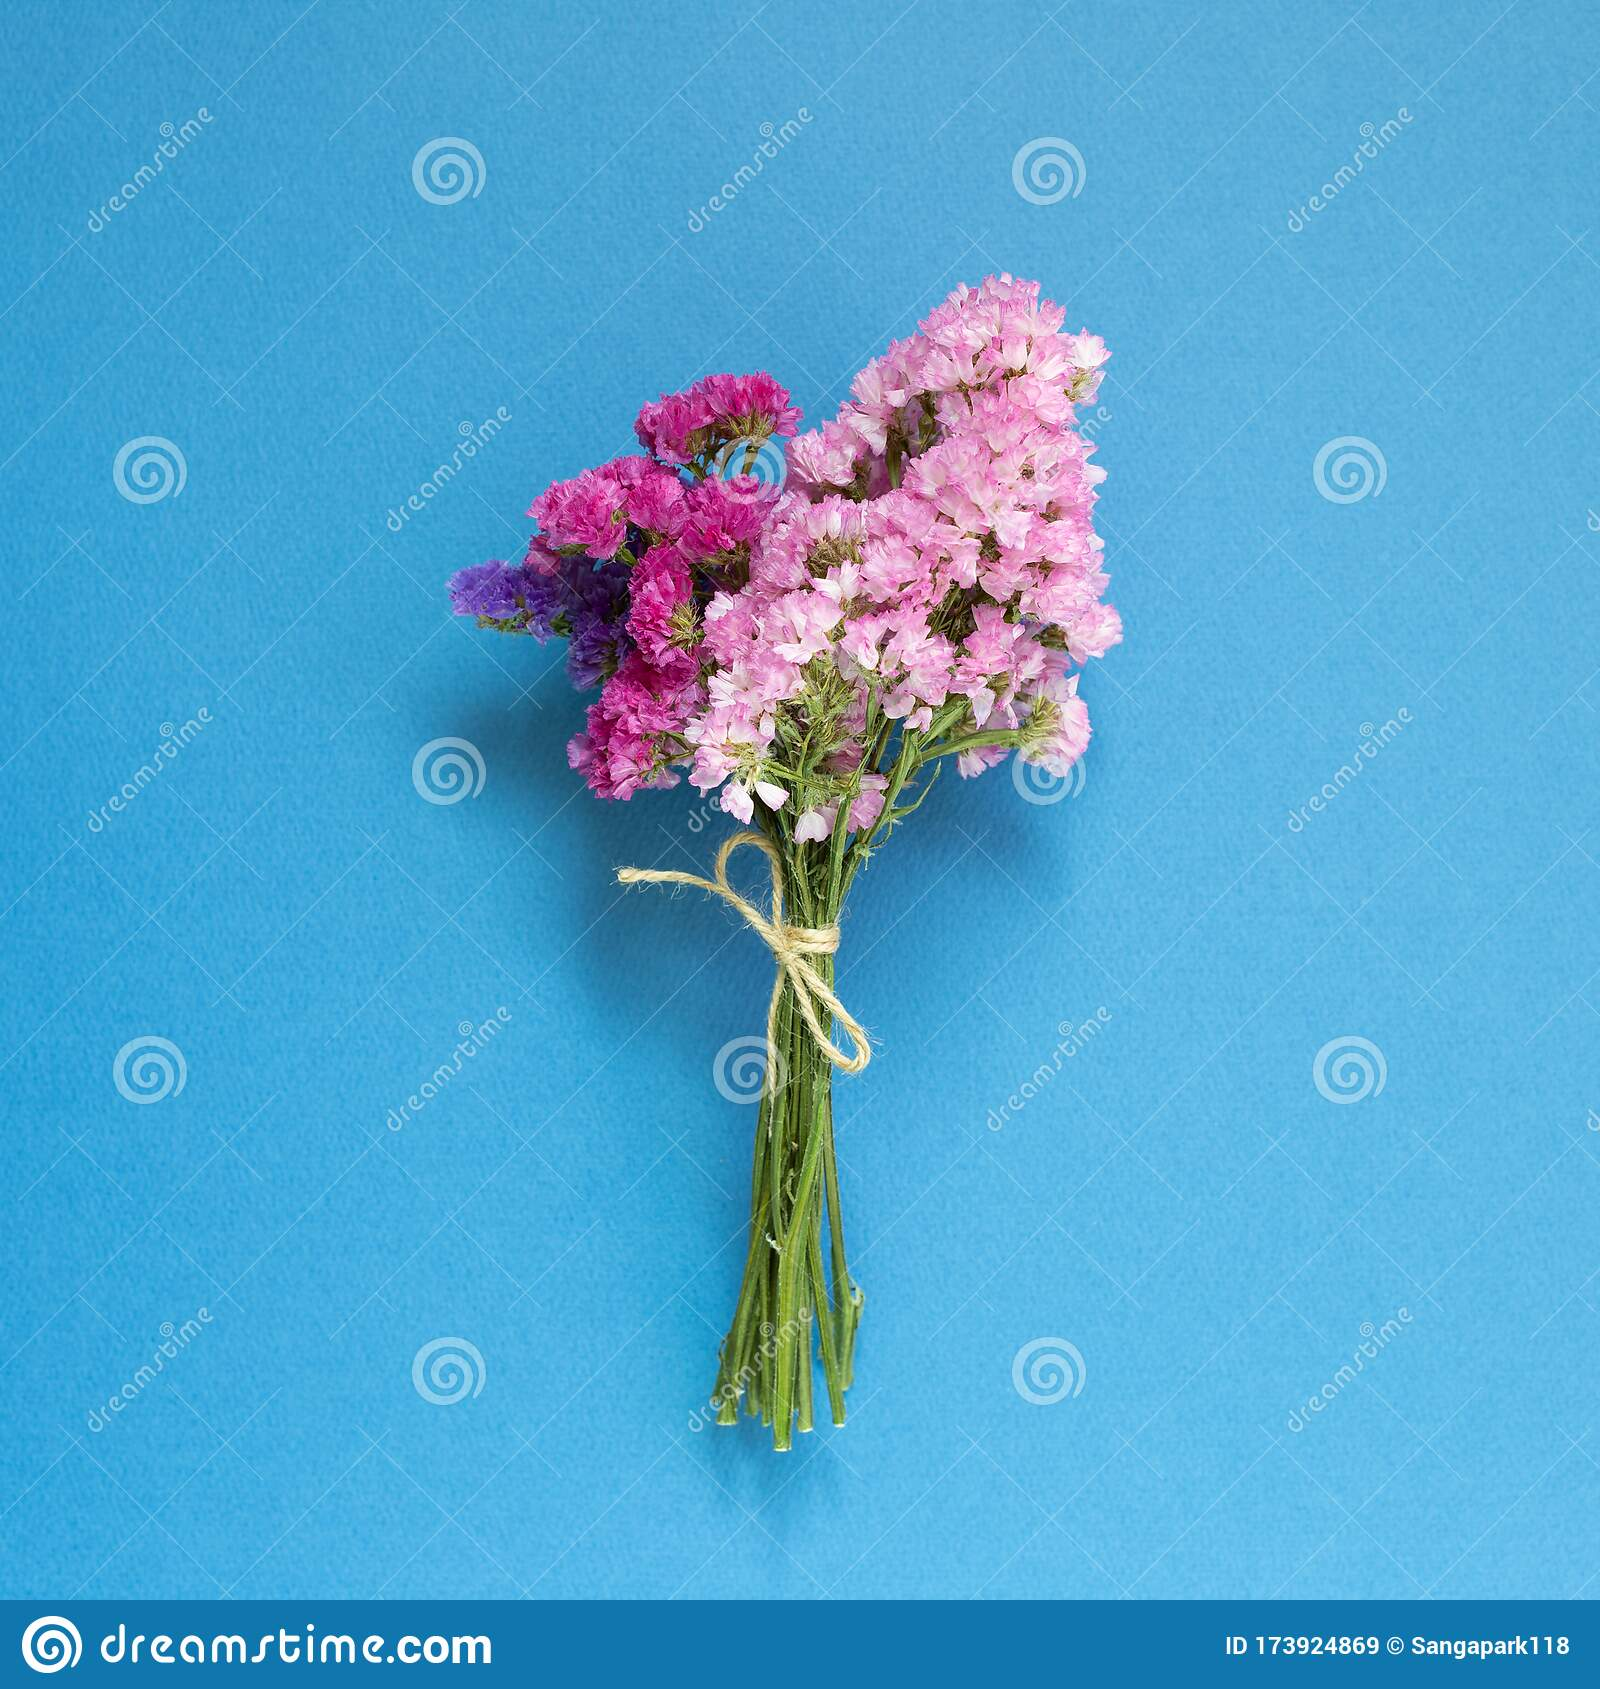 Pink Purple Statice Flowers Bouquet On Blue Background Stock Image Image Of Abstract Love 173924869